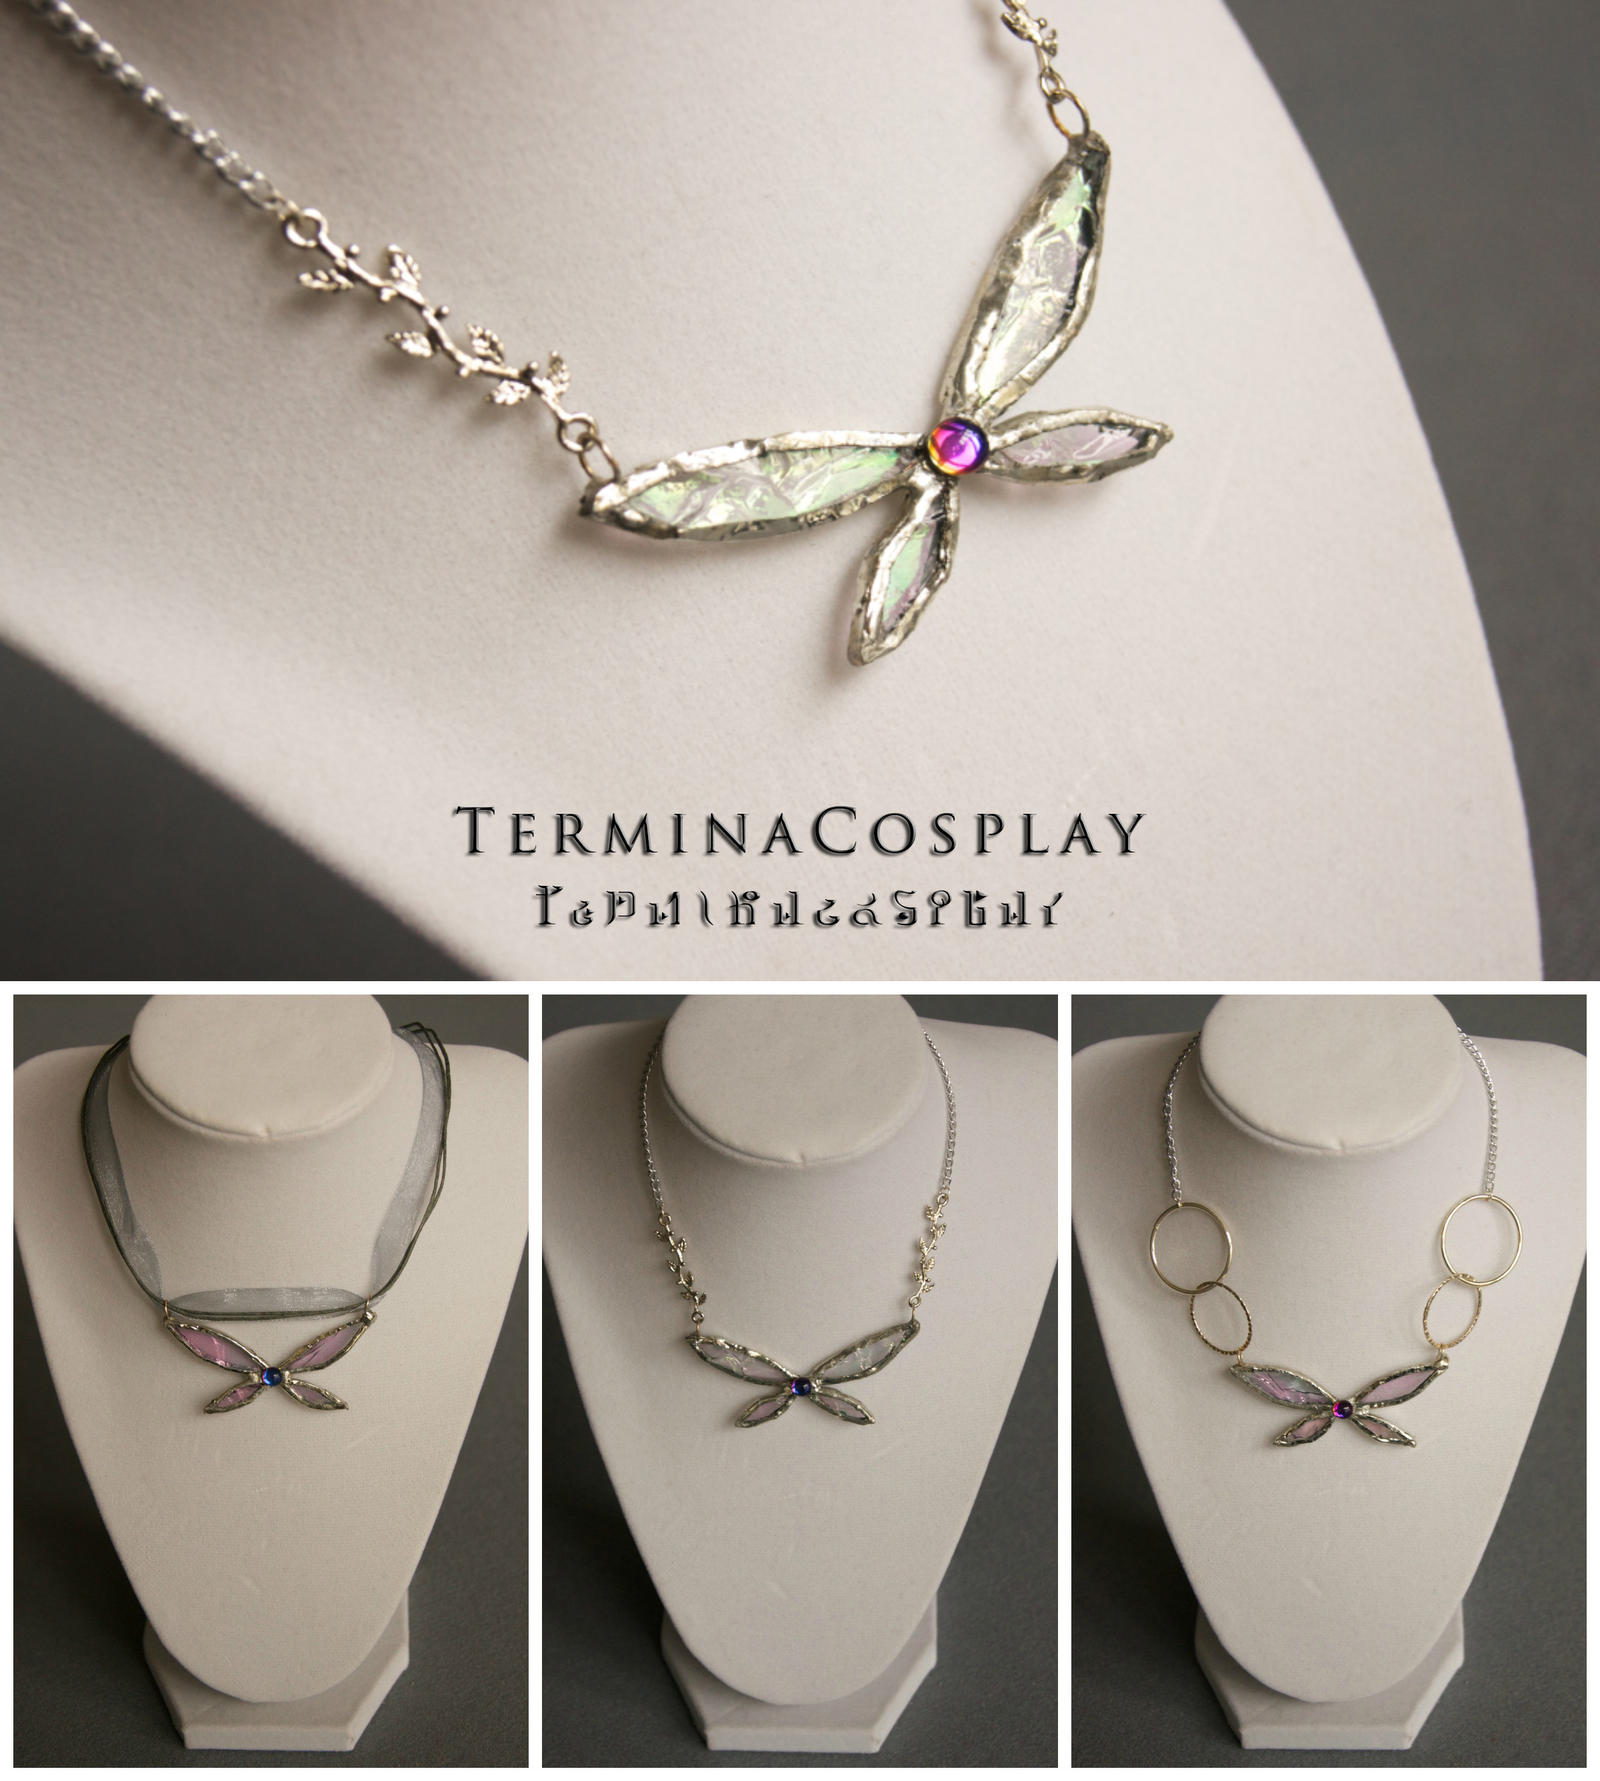 Legend of zelda inspired fairy necklace by terminacosplay on deviantart legend of zelda inspired fairy necklace by terminacosplay aloadofball Image collections